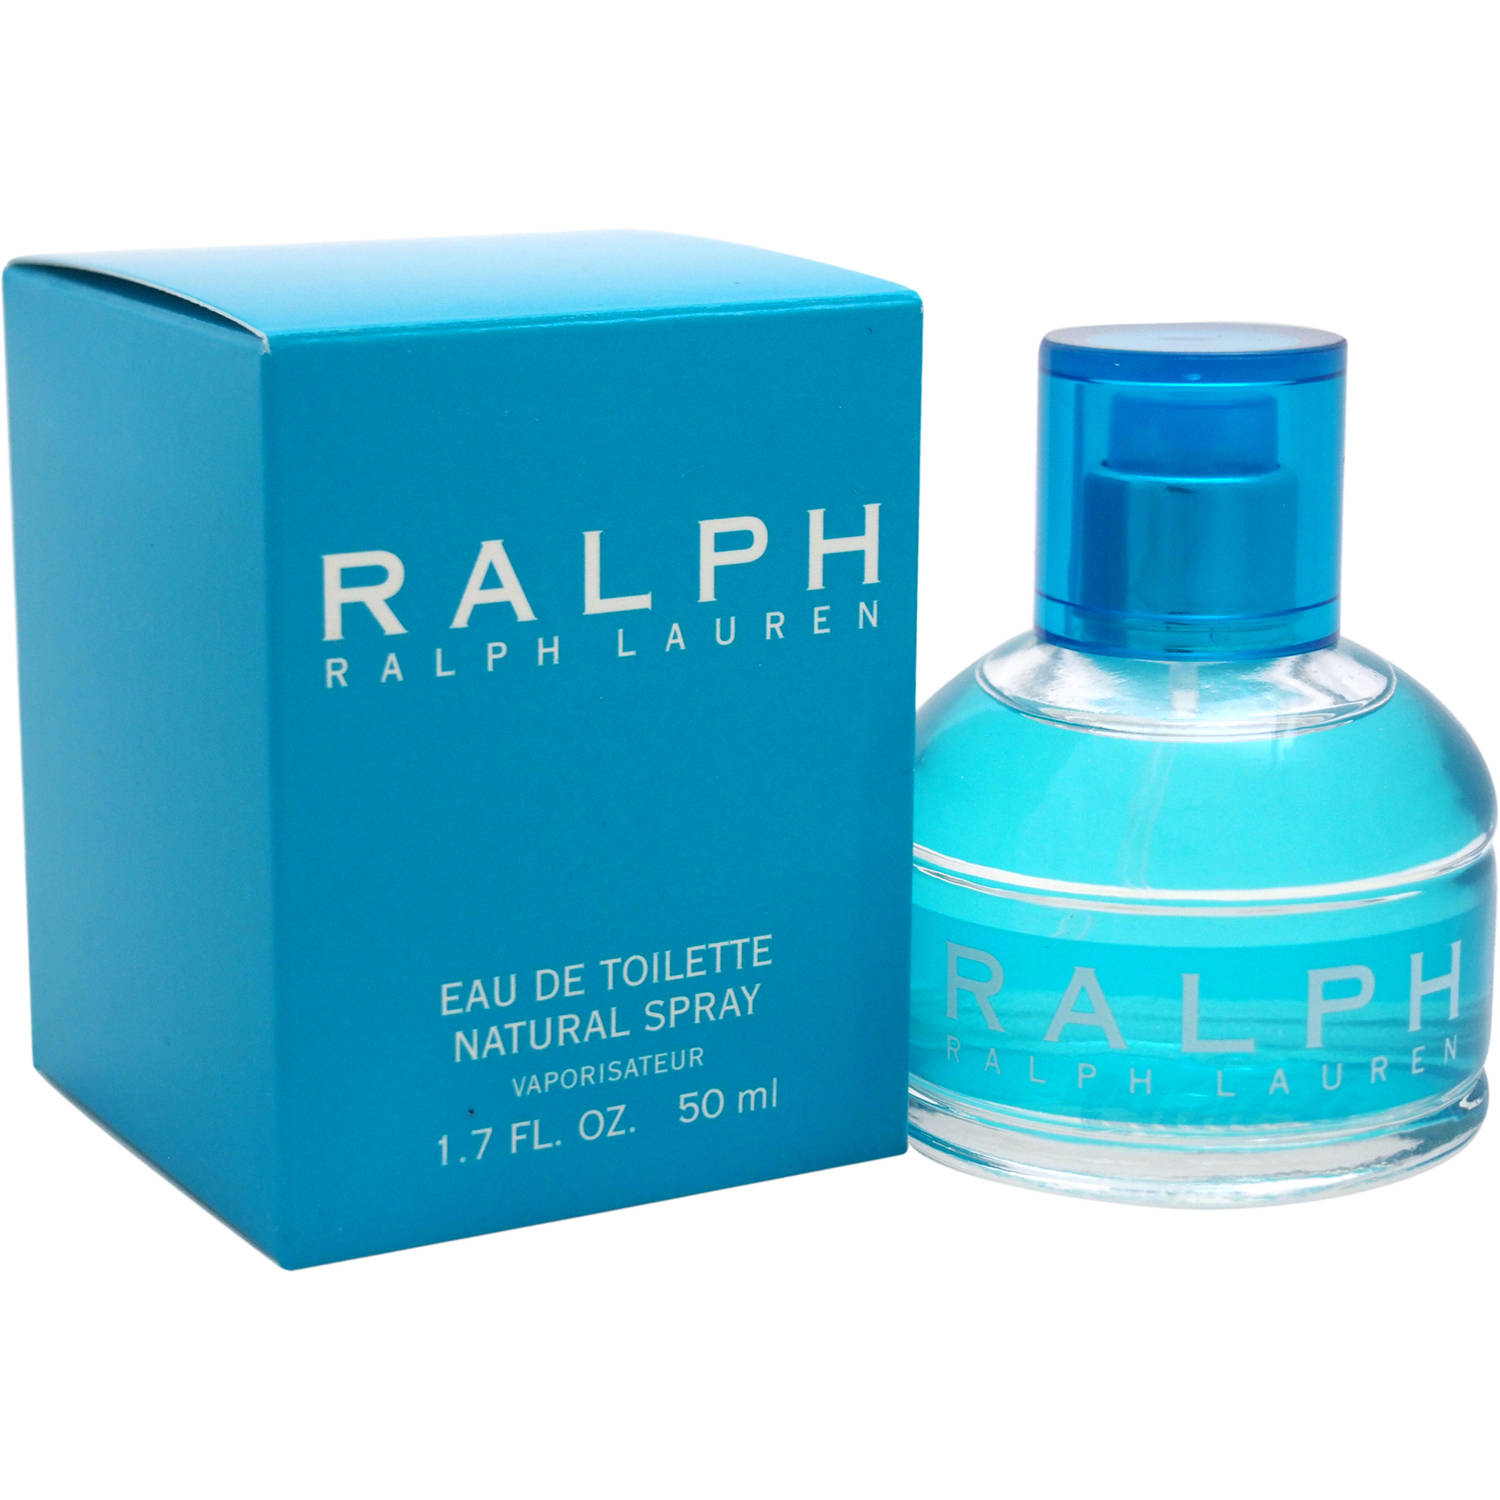 Ralph Lauren Ralph for Women Eau de Toilette Spray, 1.7 oz